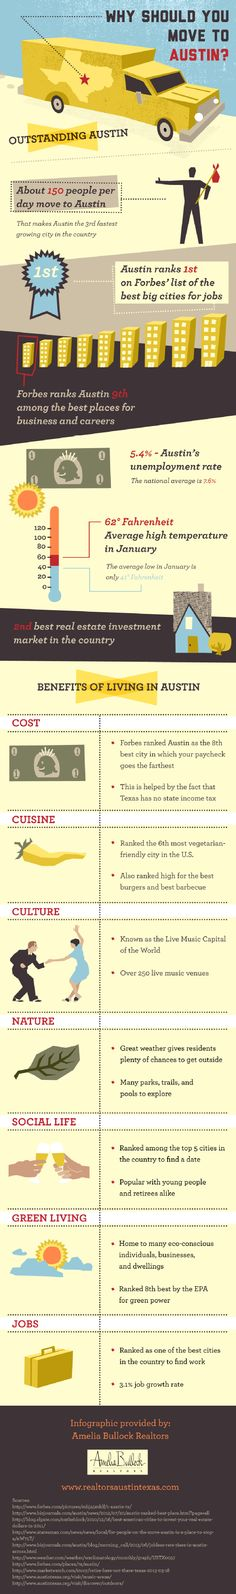 Choosing a new city to relocate to can be a tough decision—until you start to consider Austin, TX as an option.